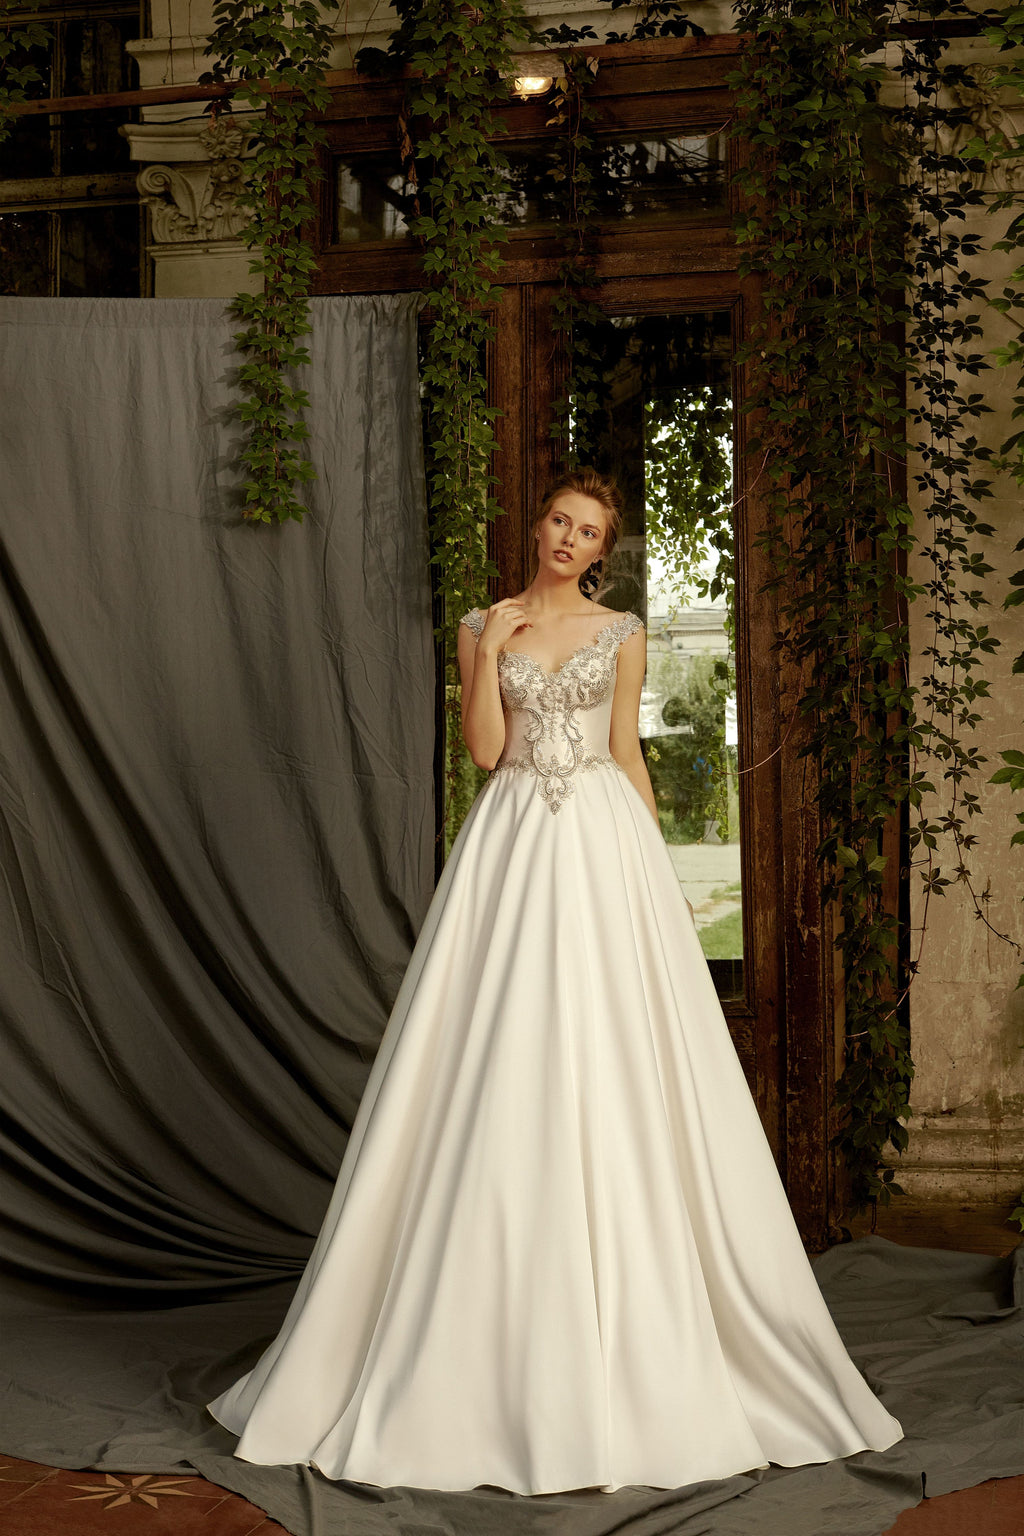 This gorgeous A-line dress features an embroidered sweetheart bodice decorated with beads and a classy train.